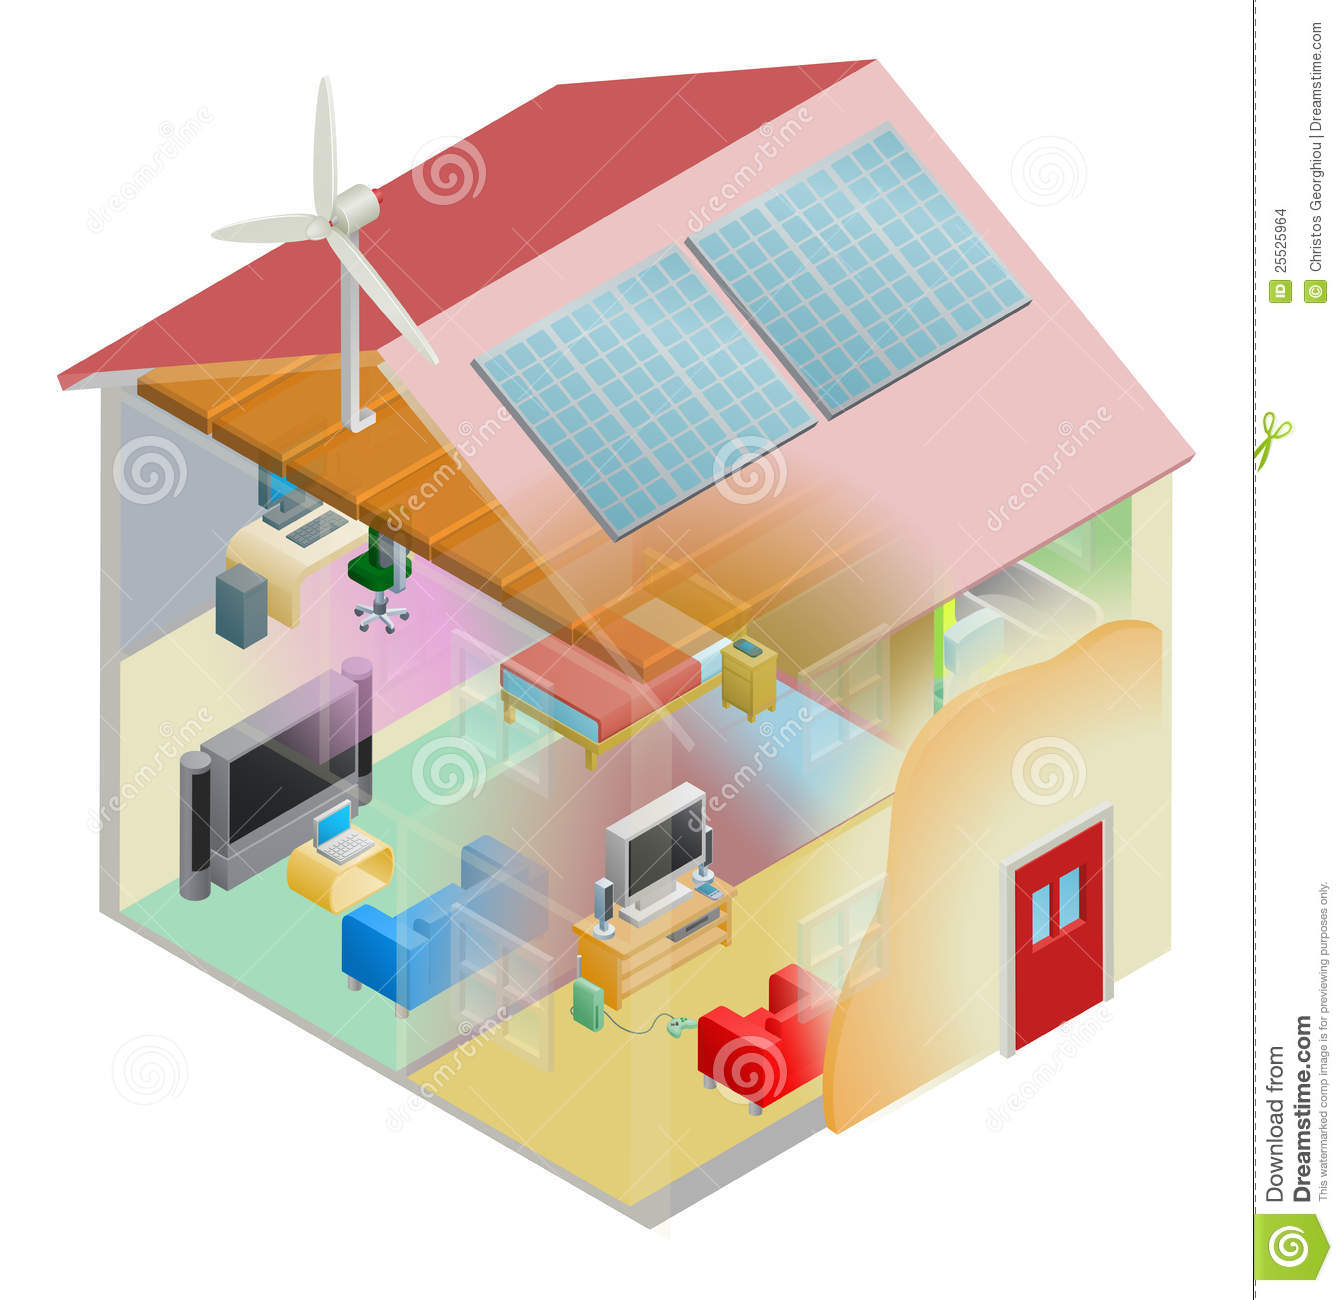 Green energy house stock vector image of efficient for Energy house